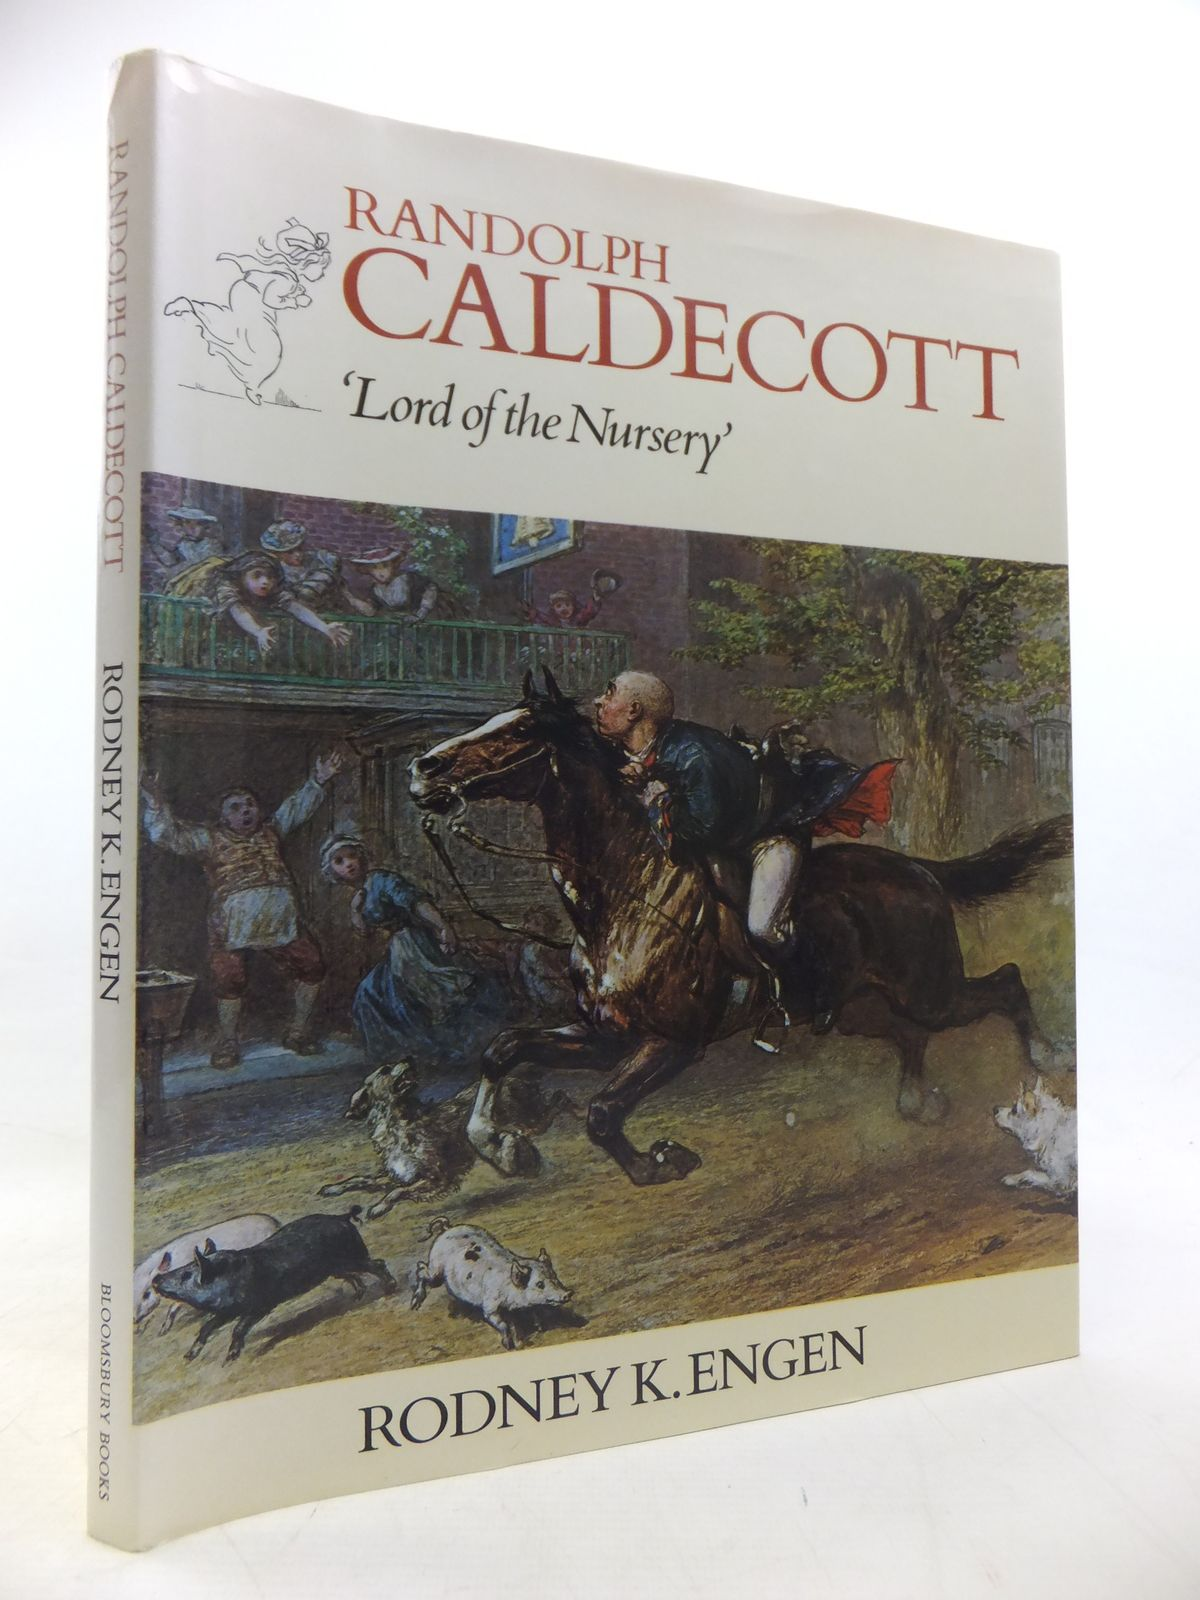 Photo of RANDOLPH CALDECOTT 'LORD OF THE NURSERY'- Stock Number: 1811257